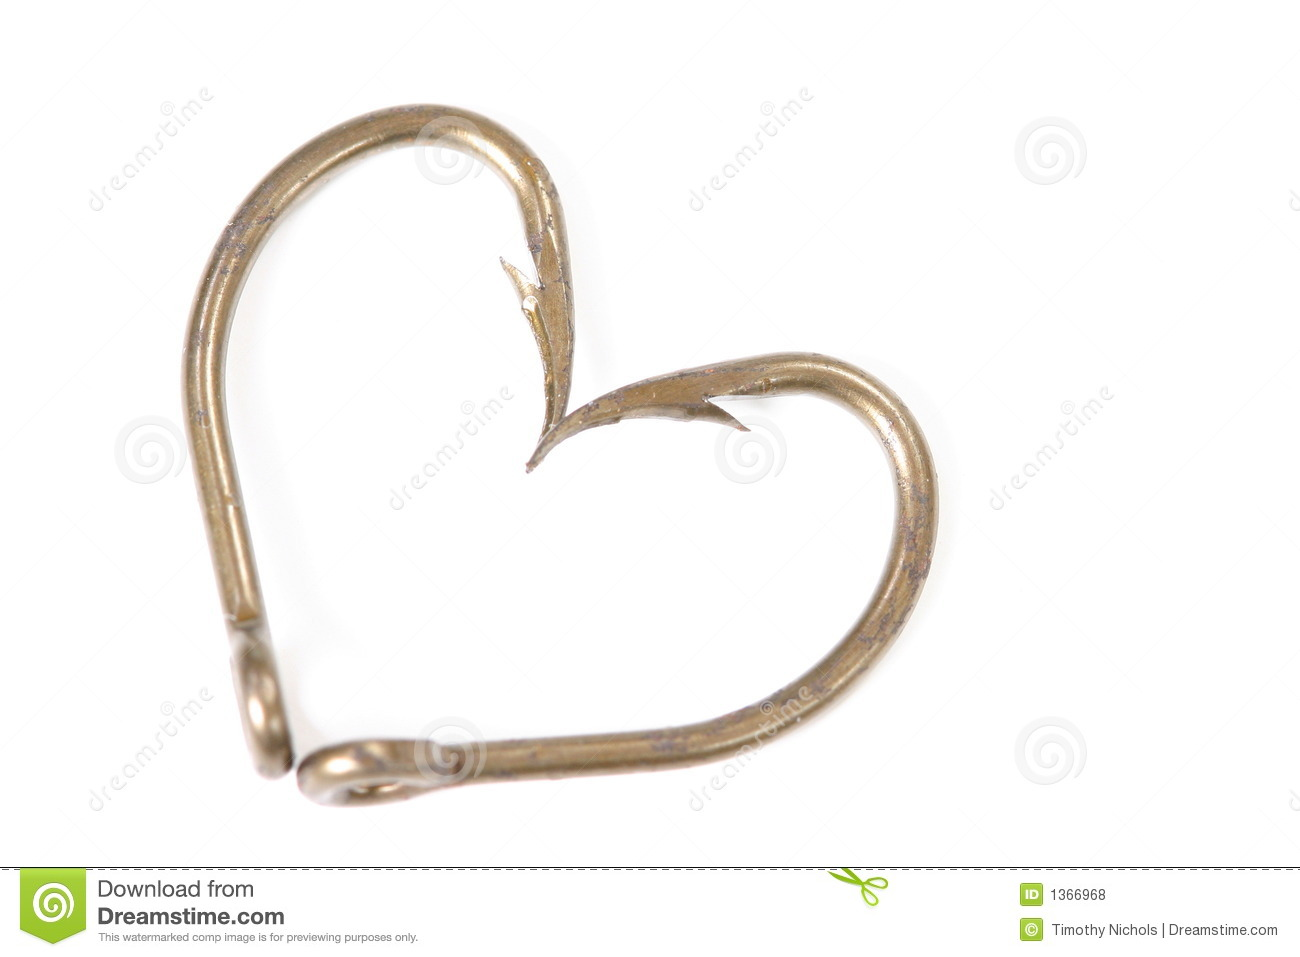 Fish hook heart royalty free stock photos image 1366968 for Pictures of fishing hooks